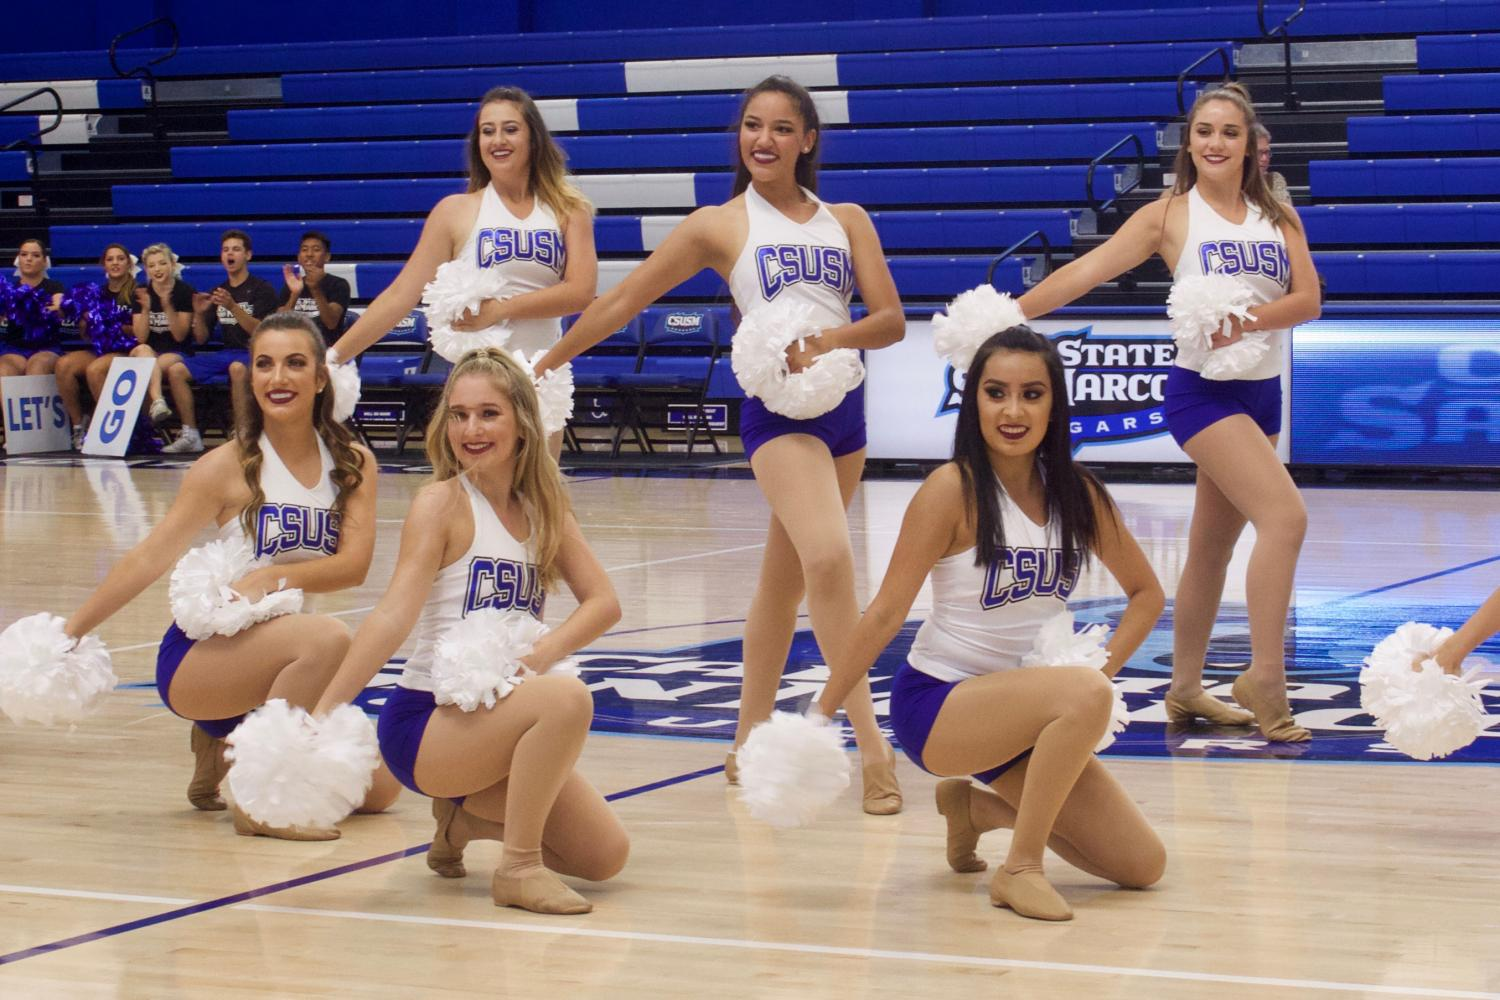 On Thursday Aug. 31 CSUSM's dance team kicked off the celebration of CSUSM's official acceptance into NCAA Division II at the sportcenter.